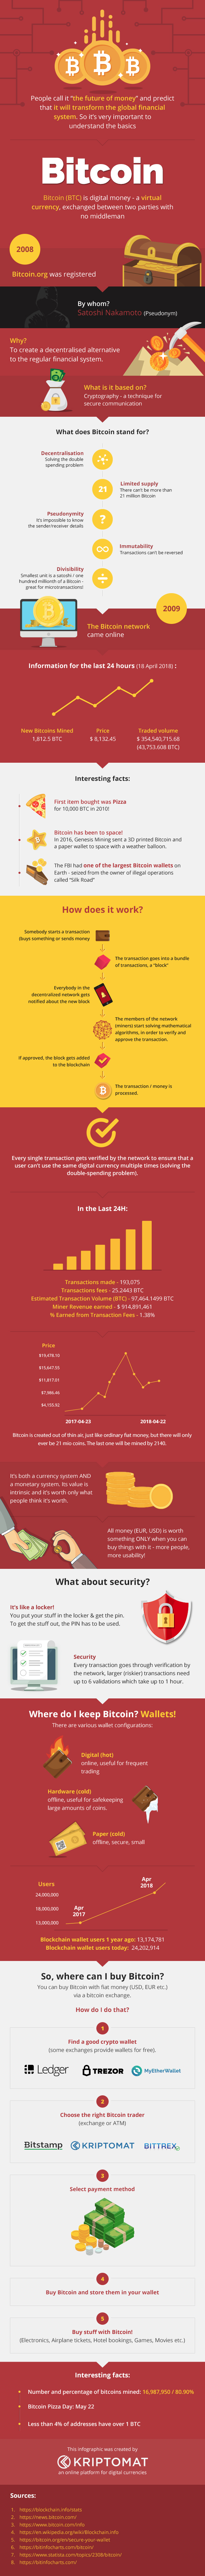 What Is Bitcoin and Where Can You Buy It? - #infographic